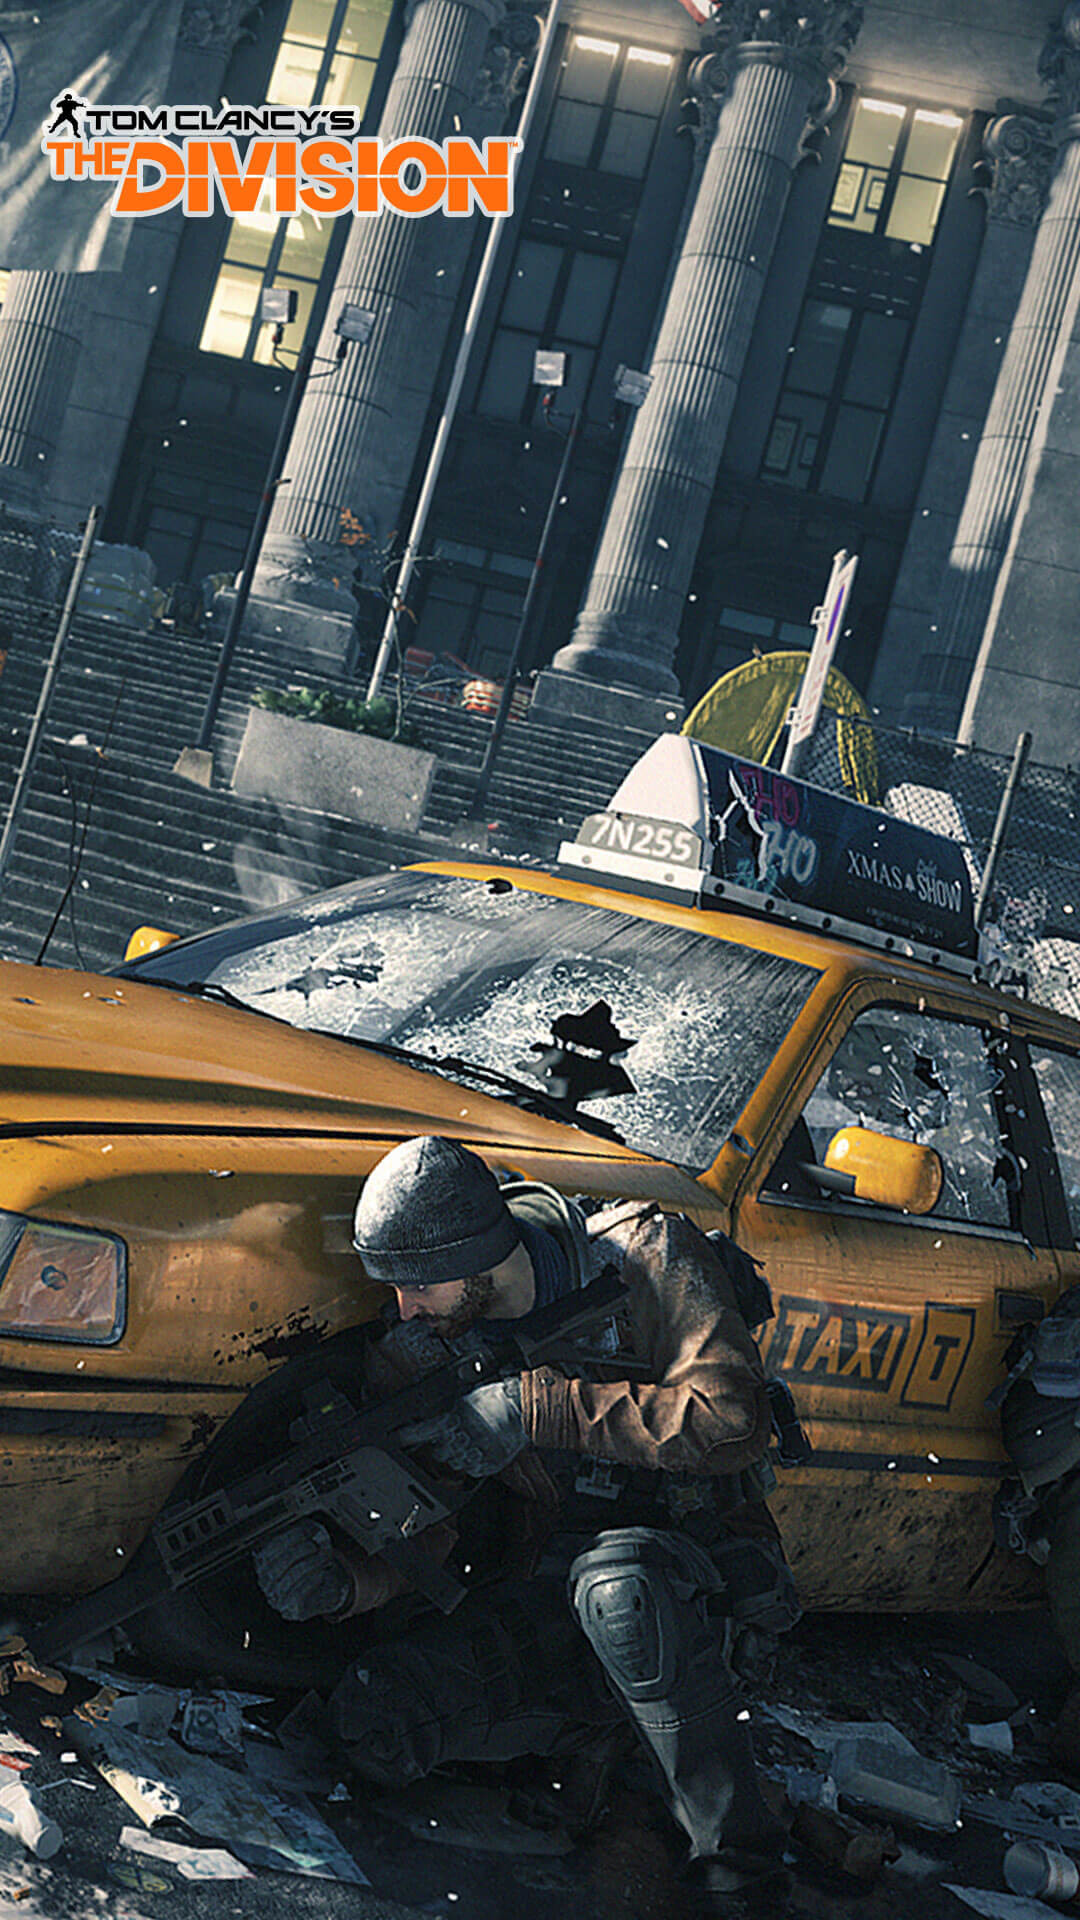 the division | Tom Clancy's The Division Wallpapers in 1080P HD Â«  GamingBolt.com … | THE DIVISION XBOX ONE | Pinterest | Division and  Wallpaper